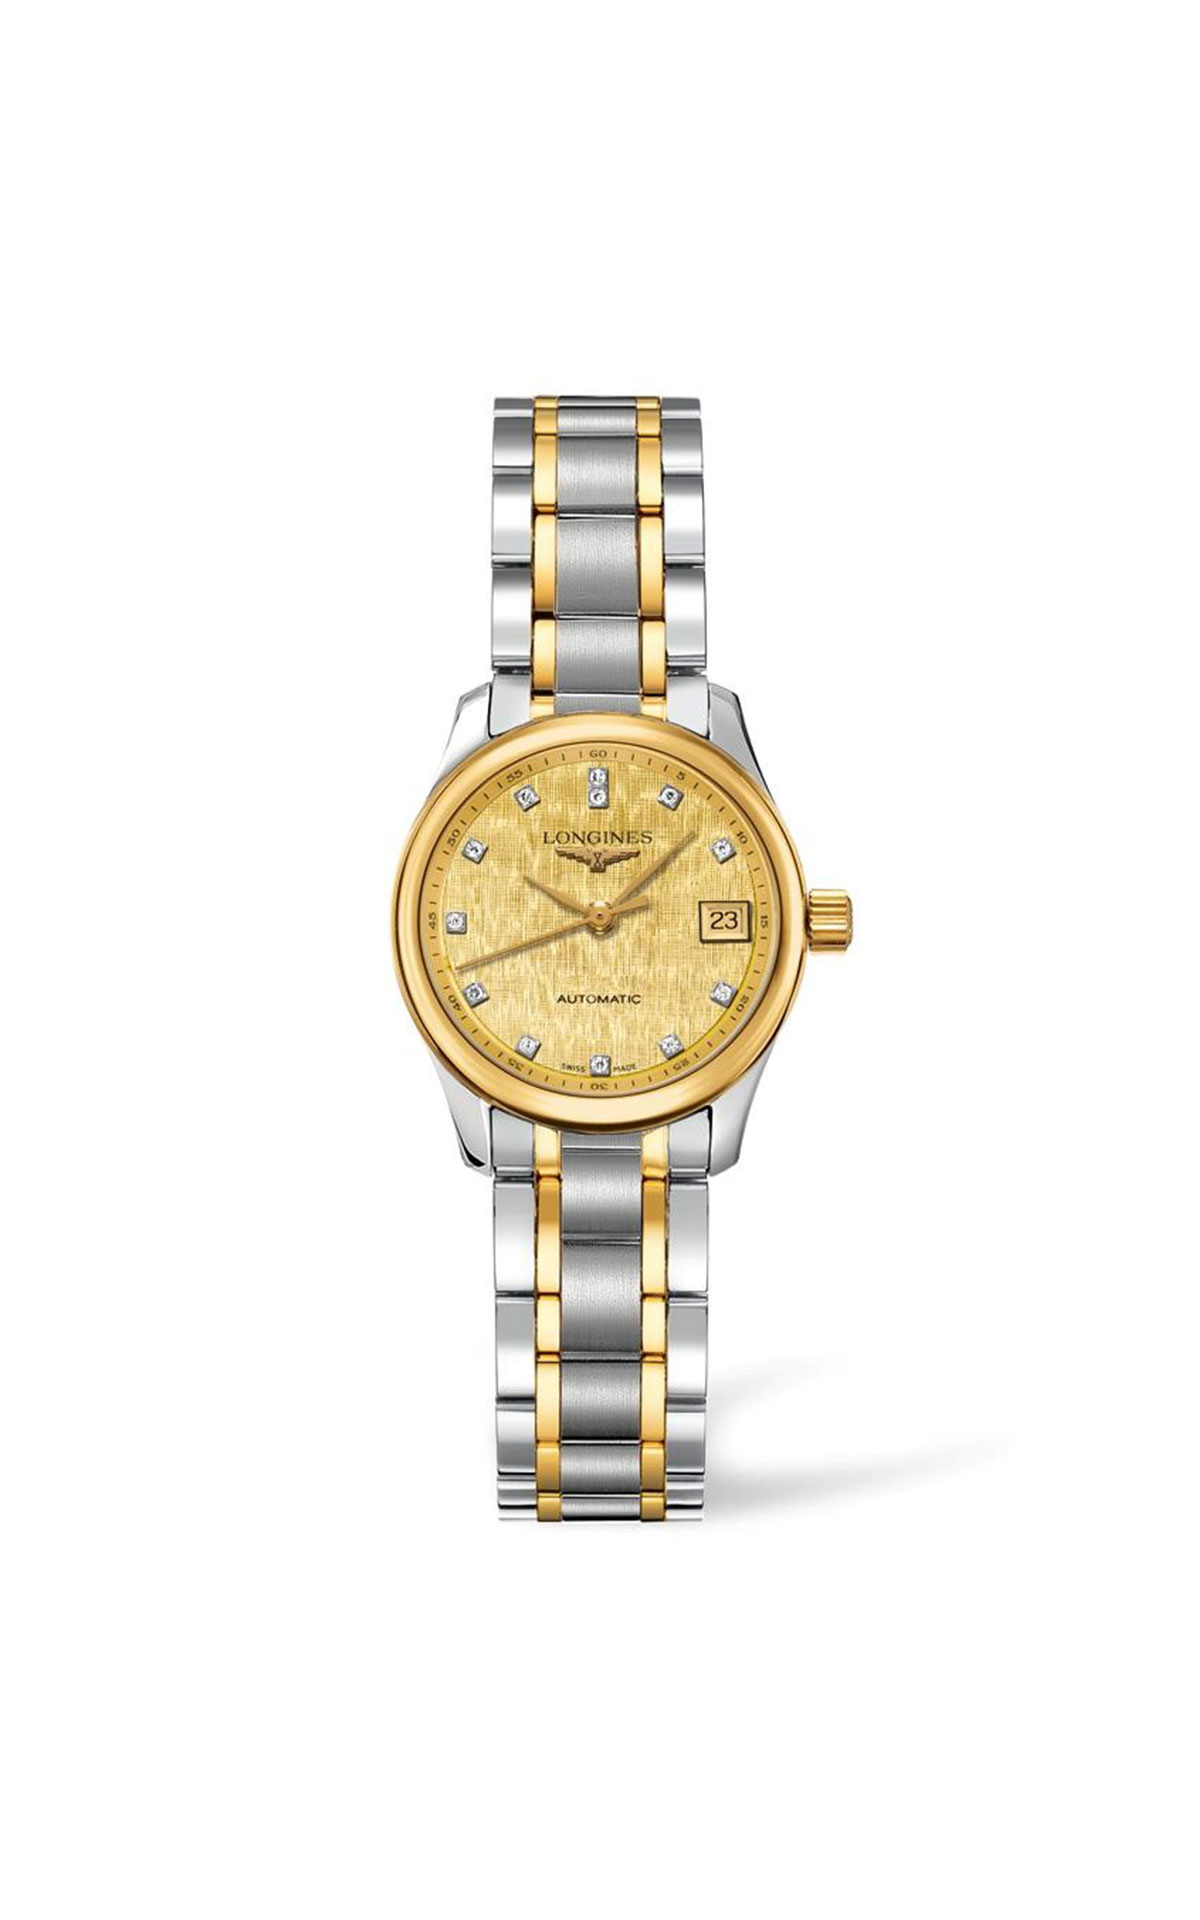 Hour Passion Longines The master collection ladies L22575387 from Bicester Village